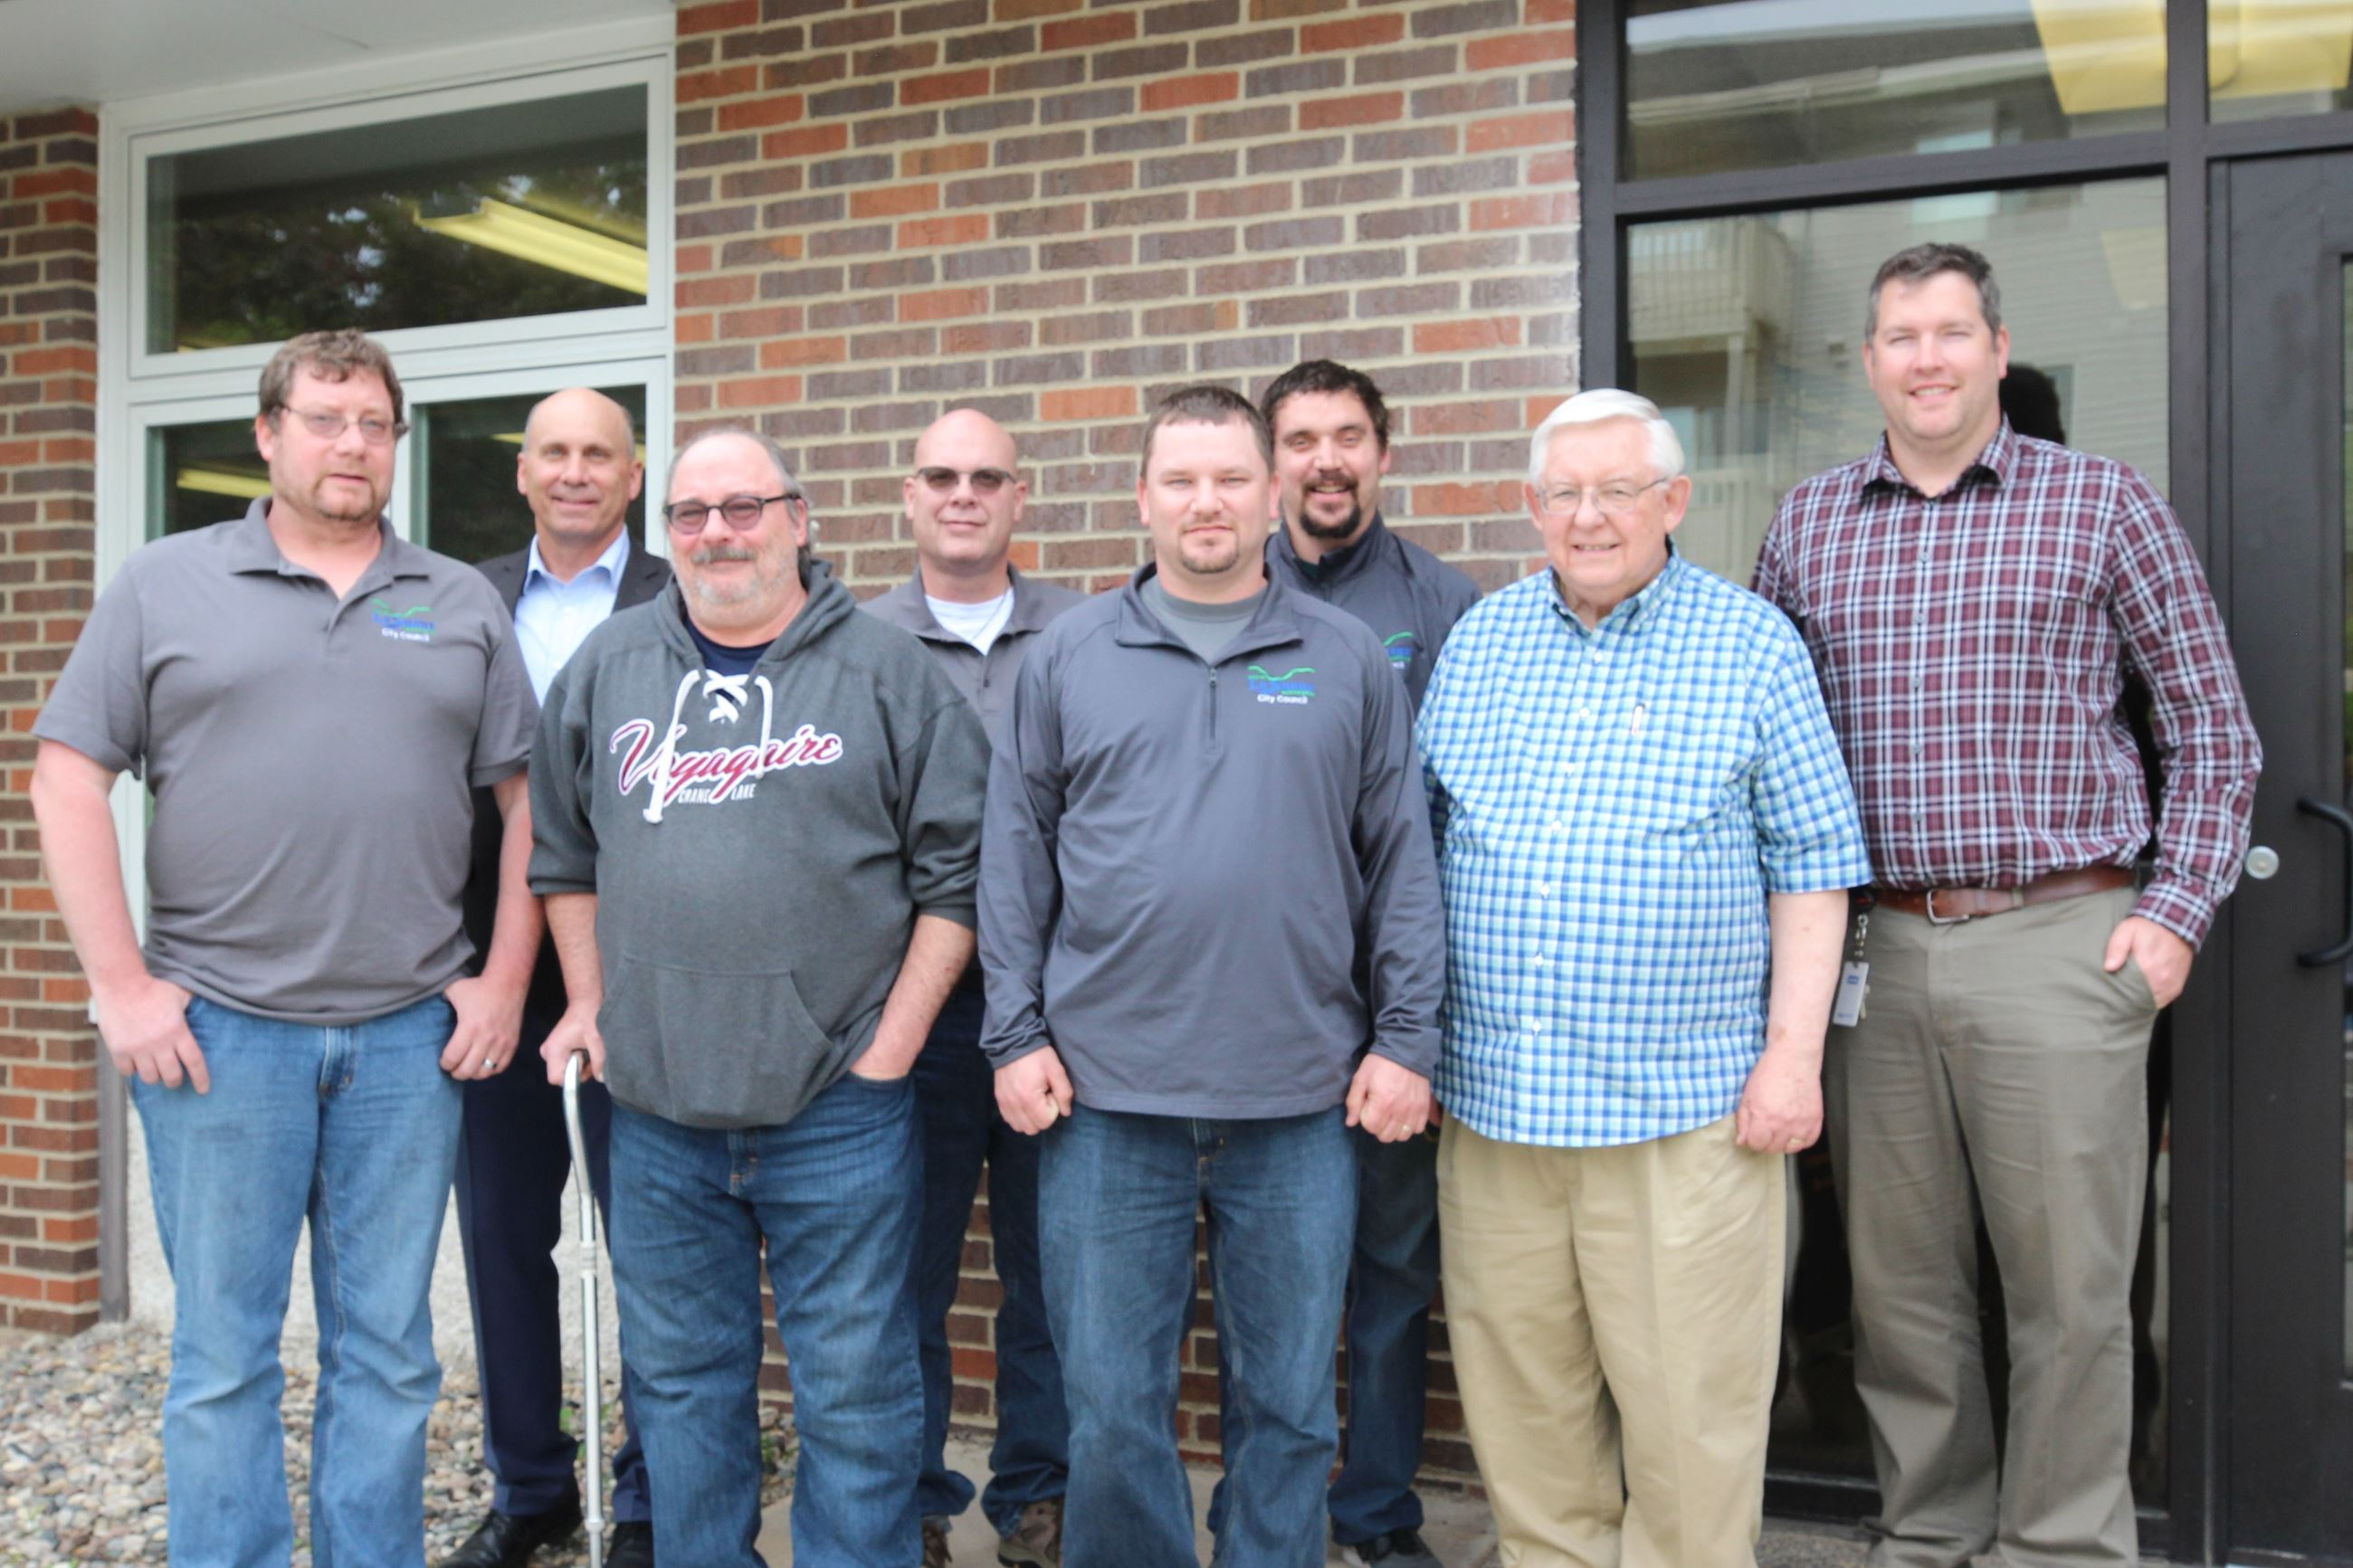 Le Sueur City Council Standing in Front of City Hall